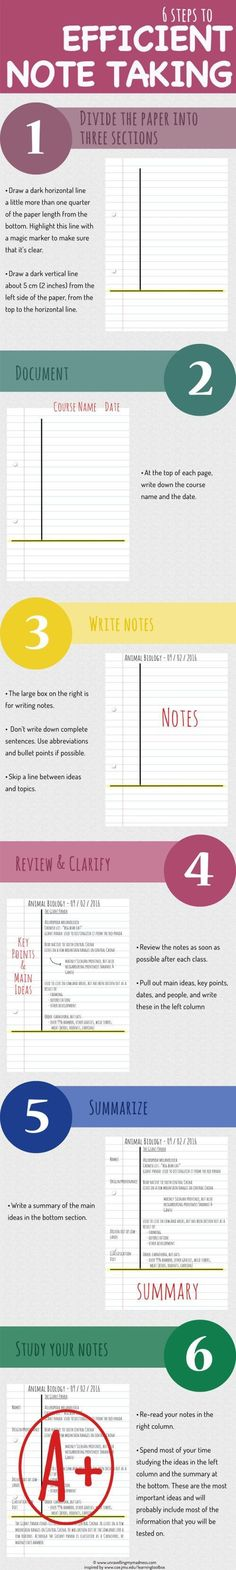 Take Awesome College Notes note-taking tips Schule Awesome College notes notetaking Schule wortschatz Tips College Hacks, School Hacks, College Life, College Nursing, College Success, College Notes, School Notes, School Stuff, E Learning